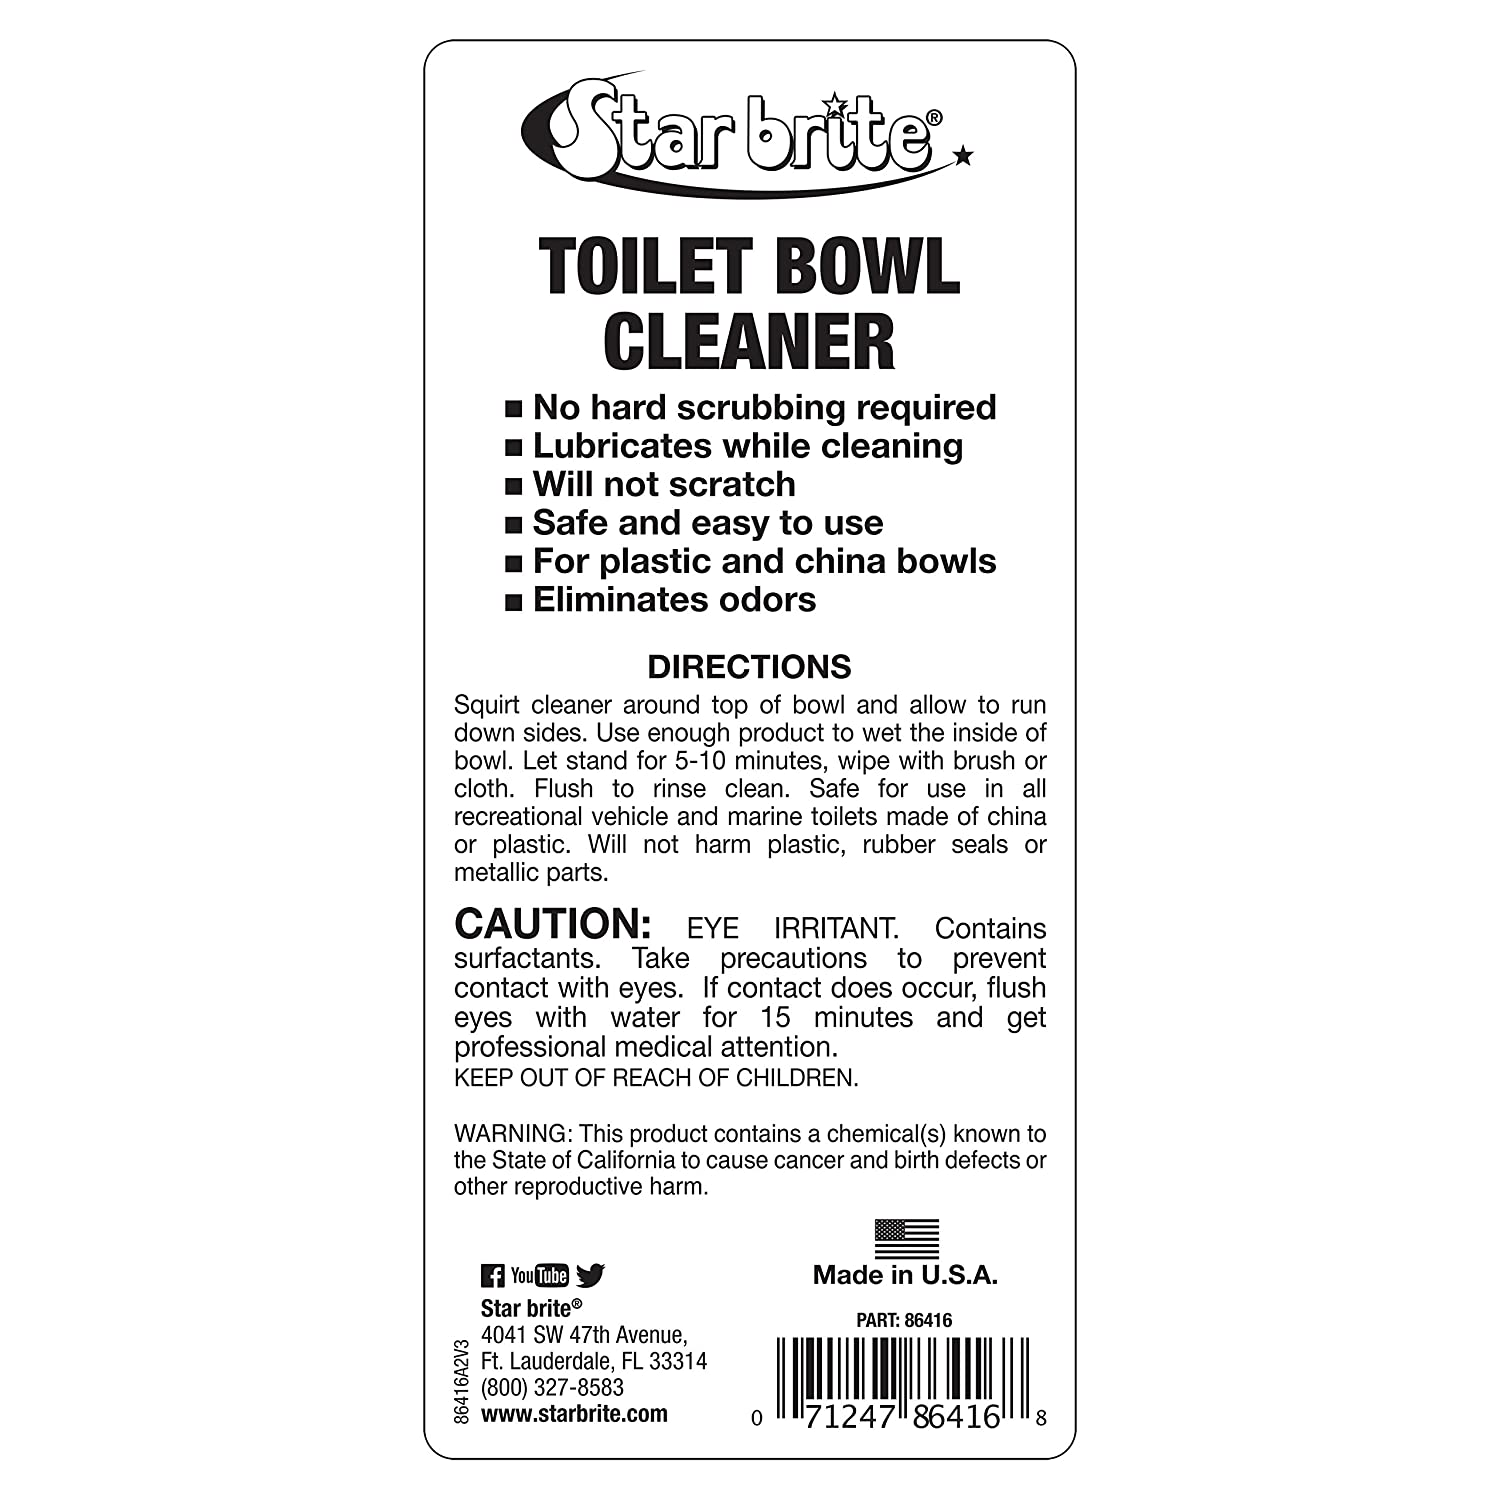 com star brite toilet bowl cleaner oz boating com star brite toilet bowl cleaner 16 oz boating cleaners sports outdoors